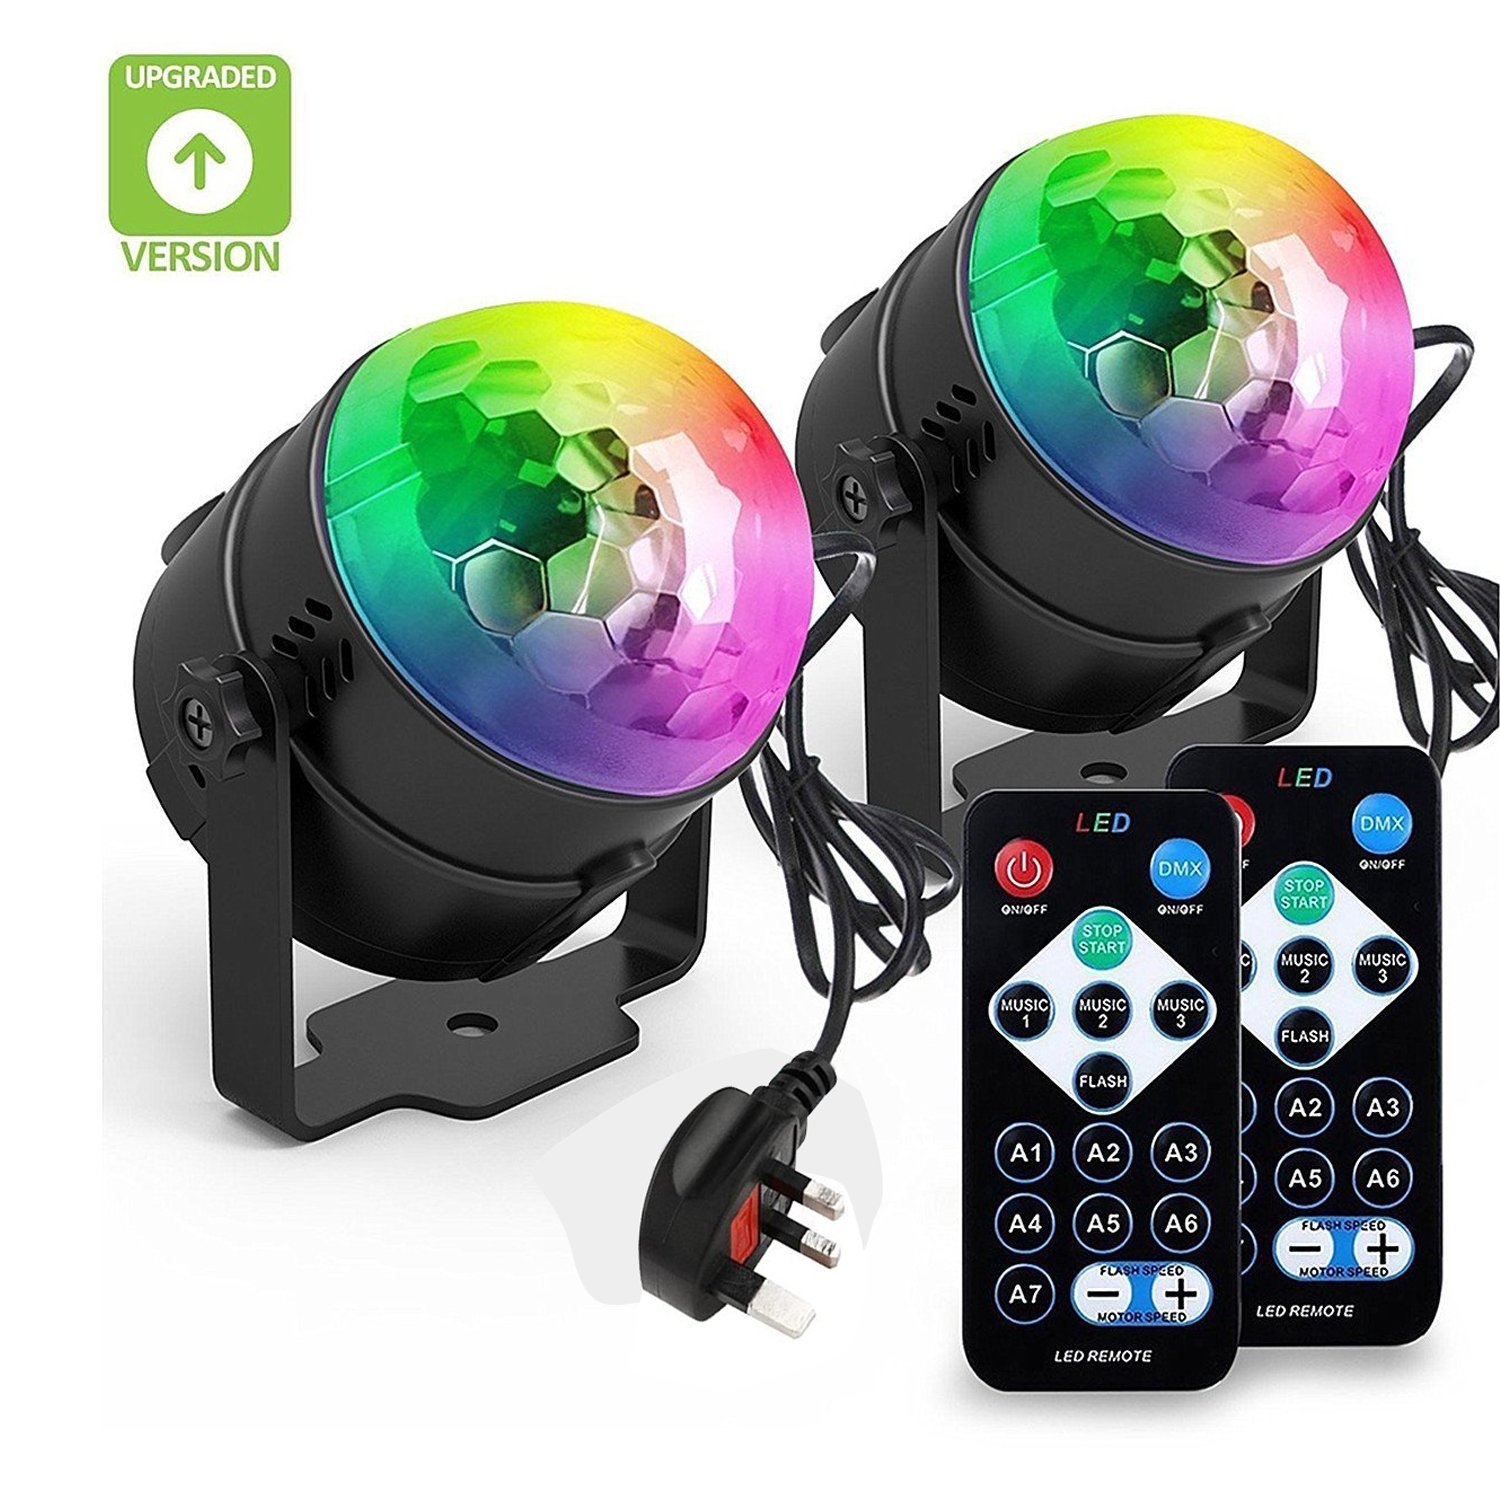 BLISSO Party Lights Sound Activated Disco Ball Strobe Light, Xmas Party Lights, 7Colors Stage Lights 3W LED Strobe Light for Bar Club DJKaraoke Wedding Show Birthday Decoration Outdoor[2-PACK][UK-PLUG] INCON-UK